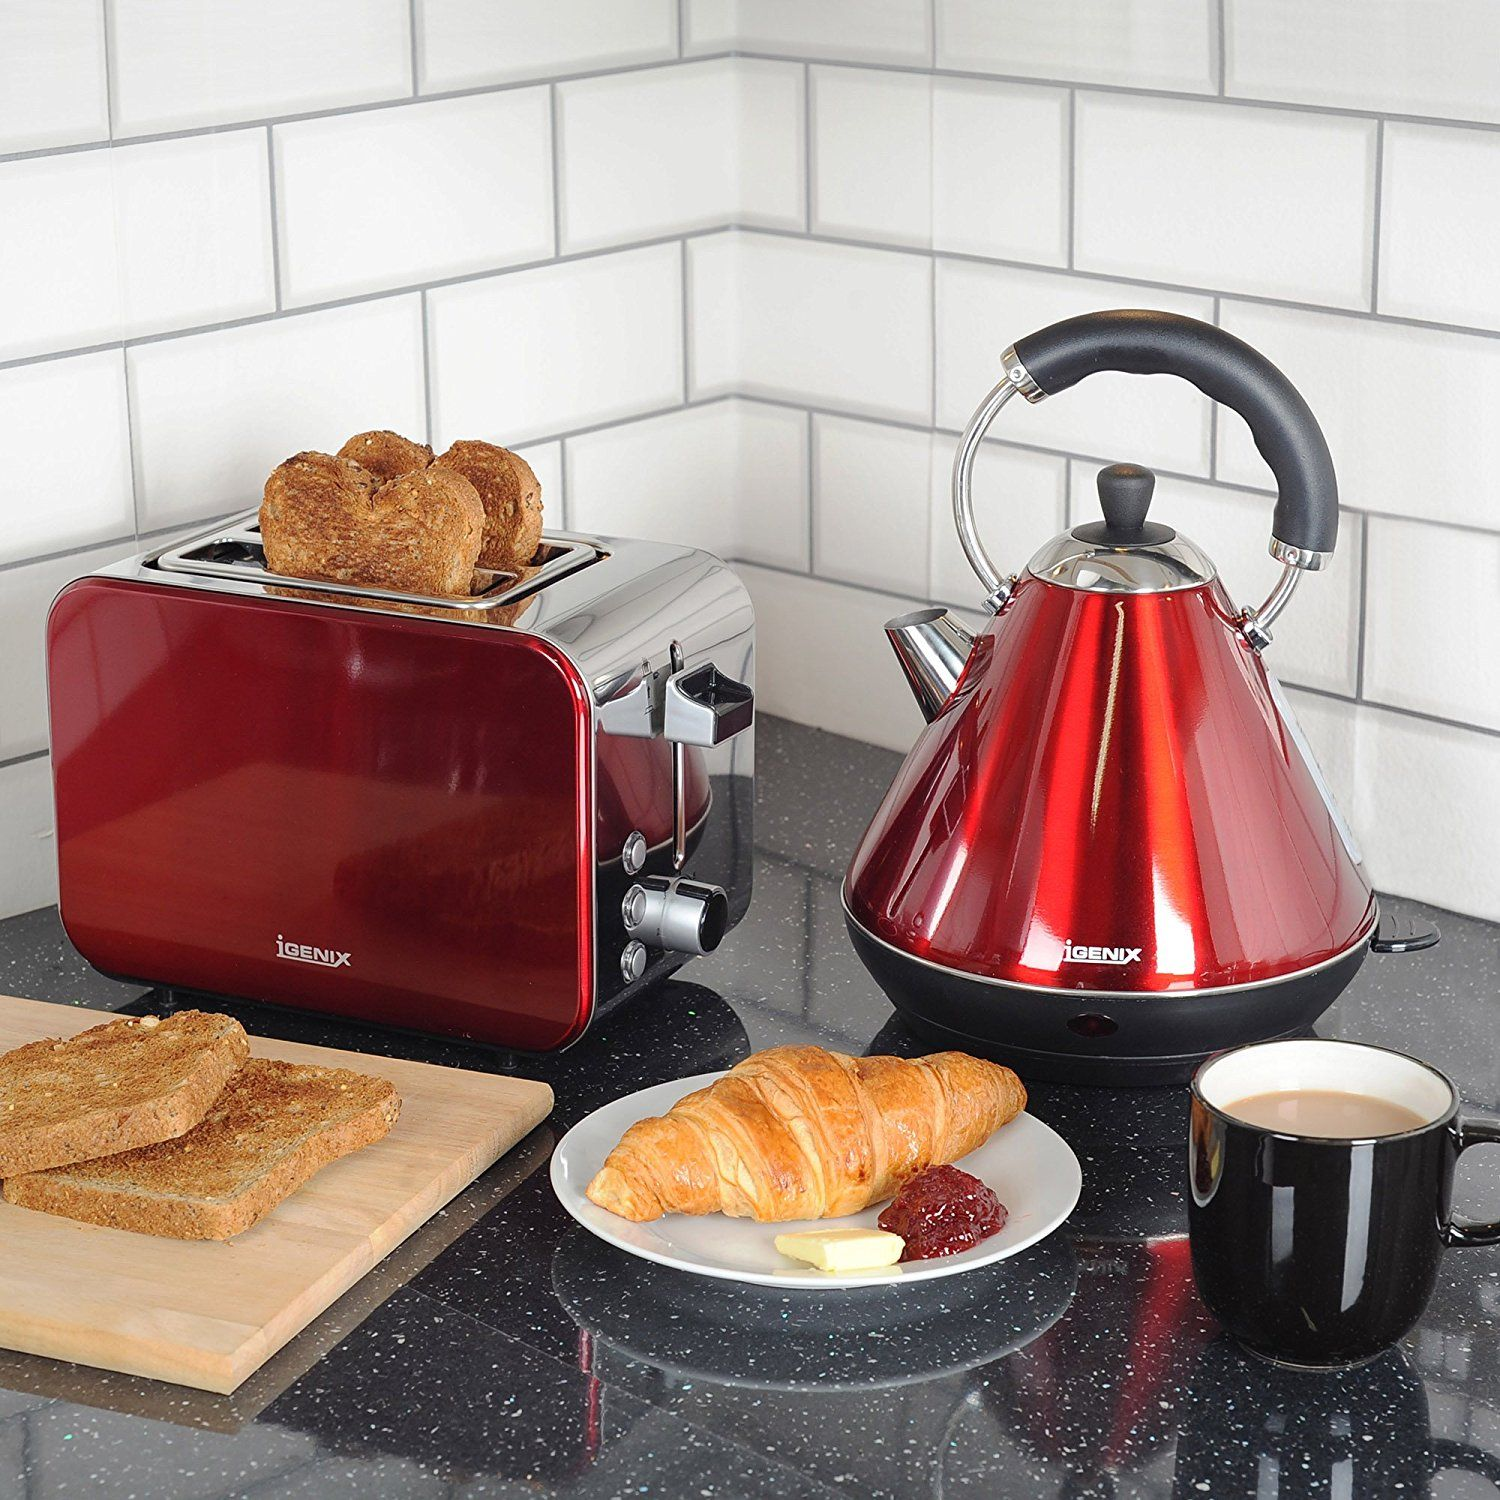 1a914bacf0e1 Igenix IGPK12 Breakfast Set, Pyramid Kettle and 2 Slice Toaster - Metallic  Red: Amazon.co.uk: Kitchen & Home